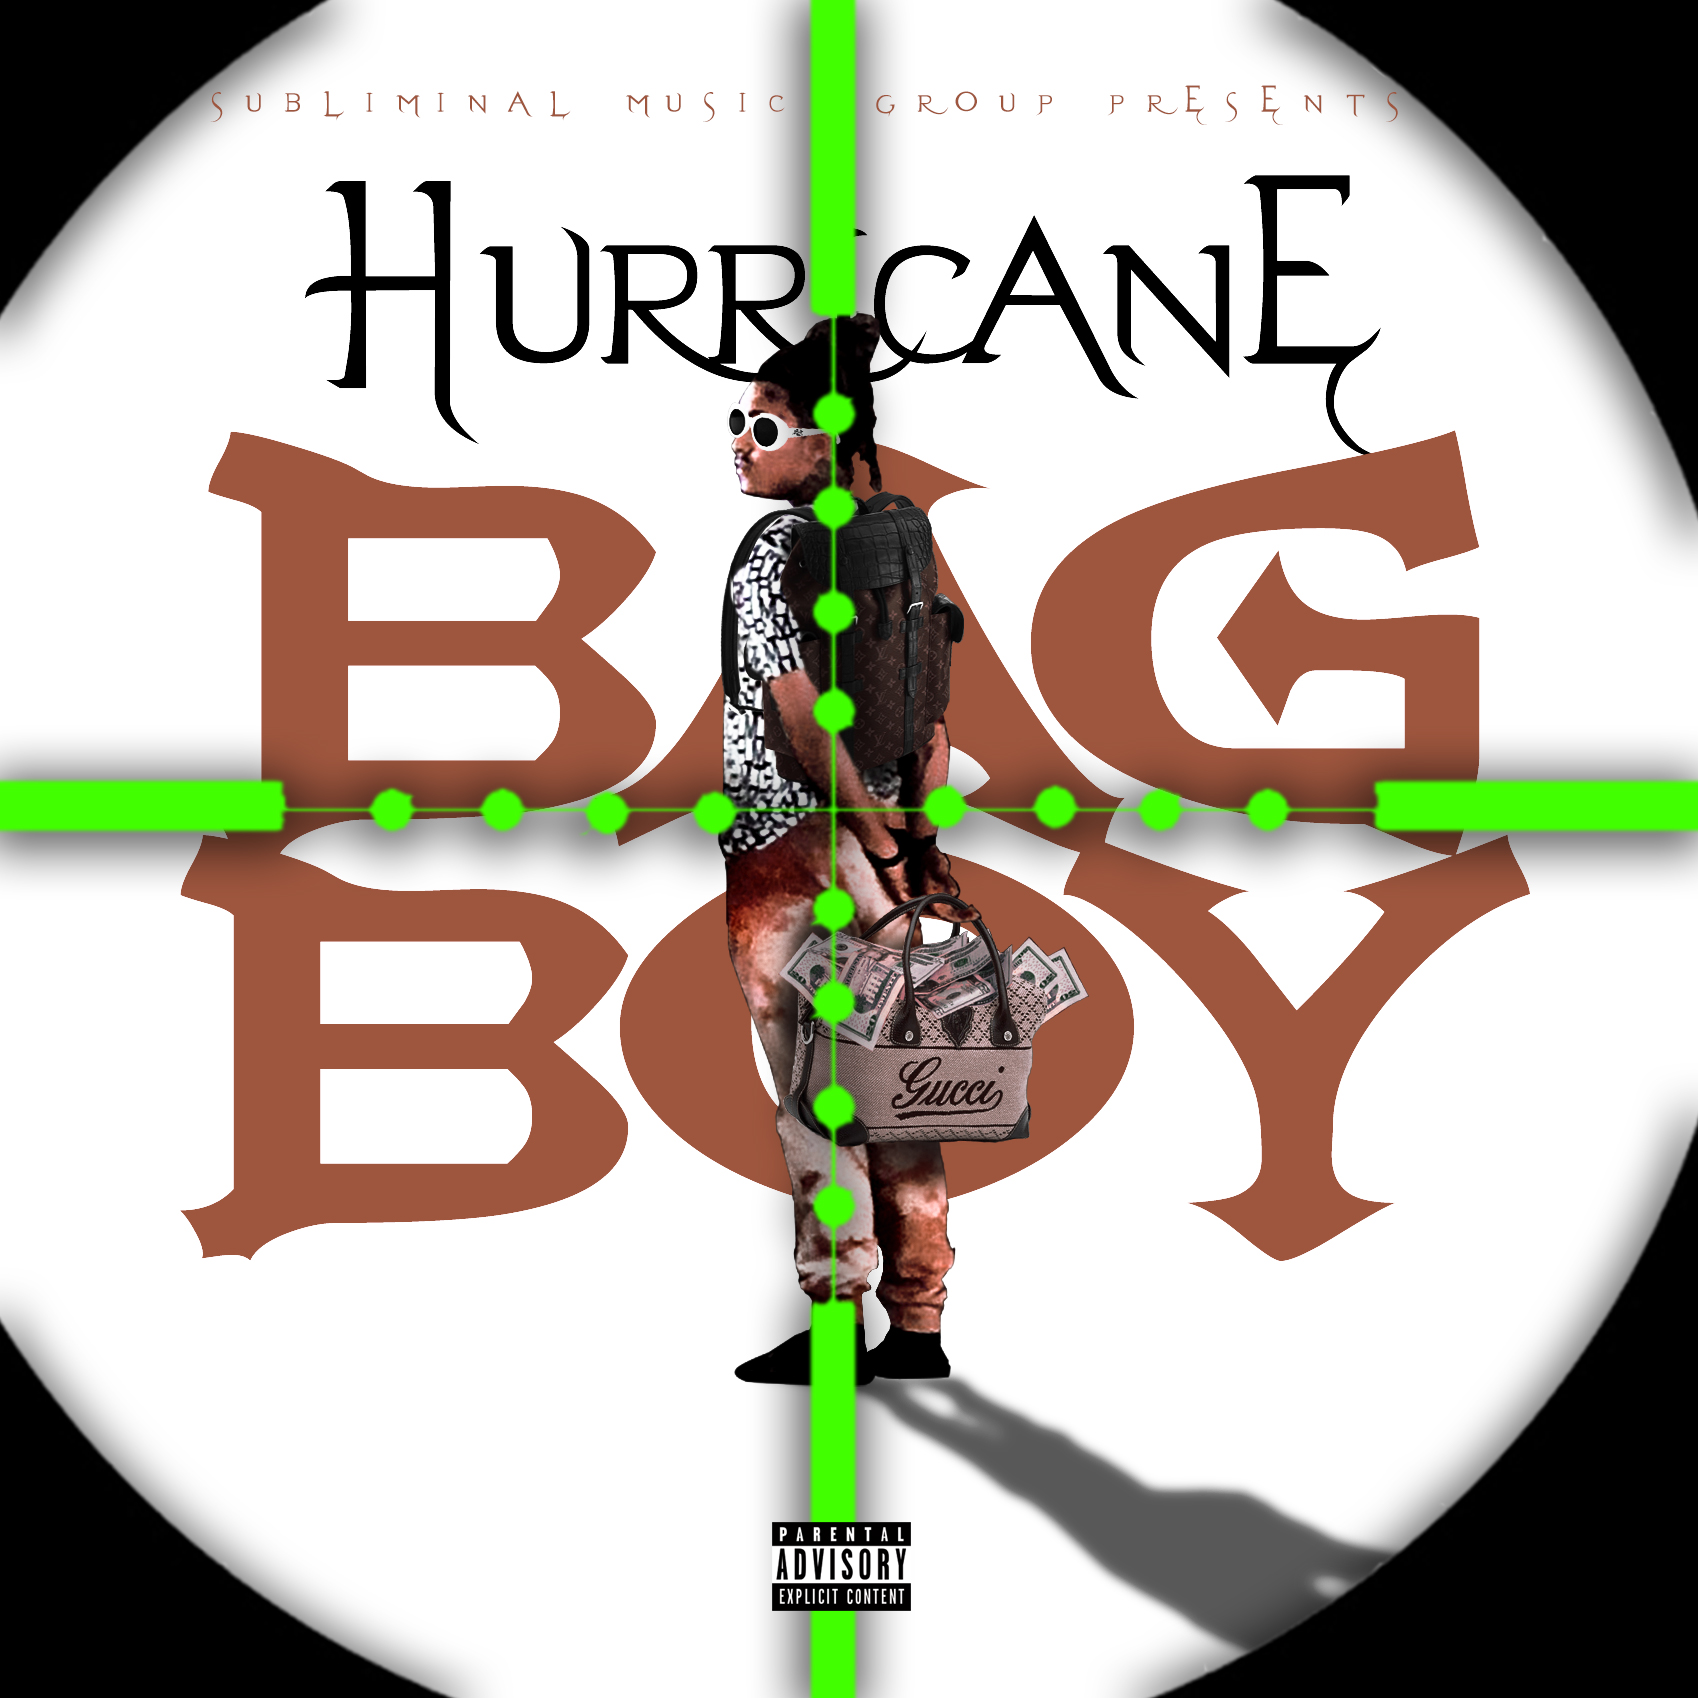 Hurricane - Bag Boy